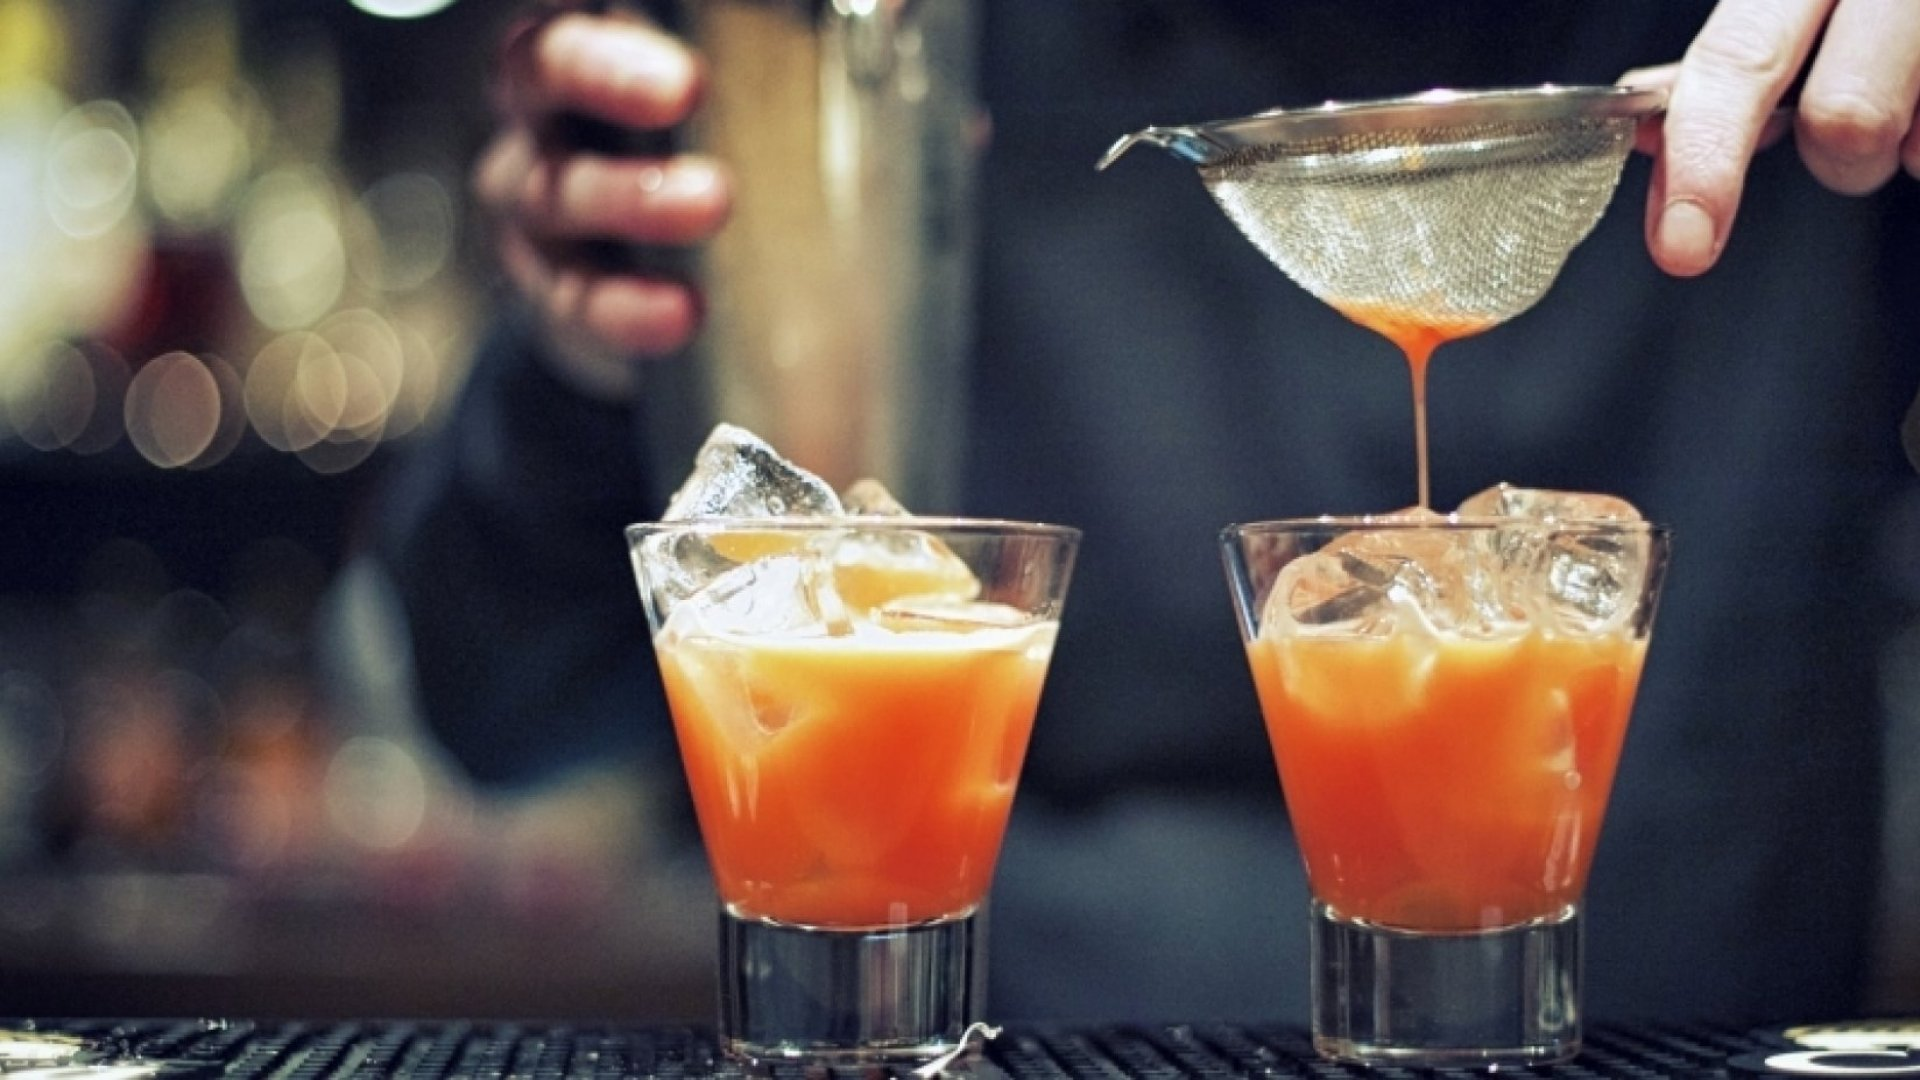 Bernooli Uses Tech to Craft the Perfect Cocktail